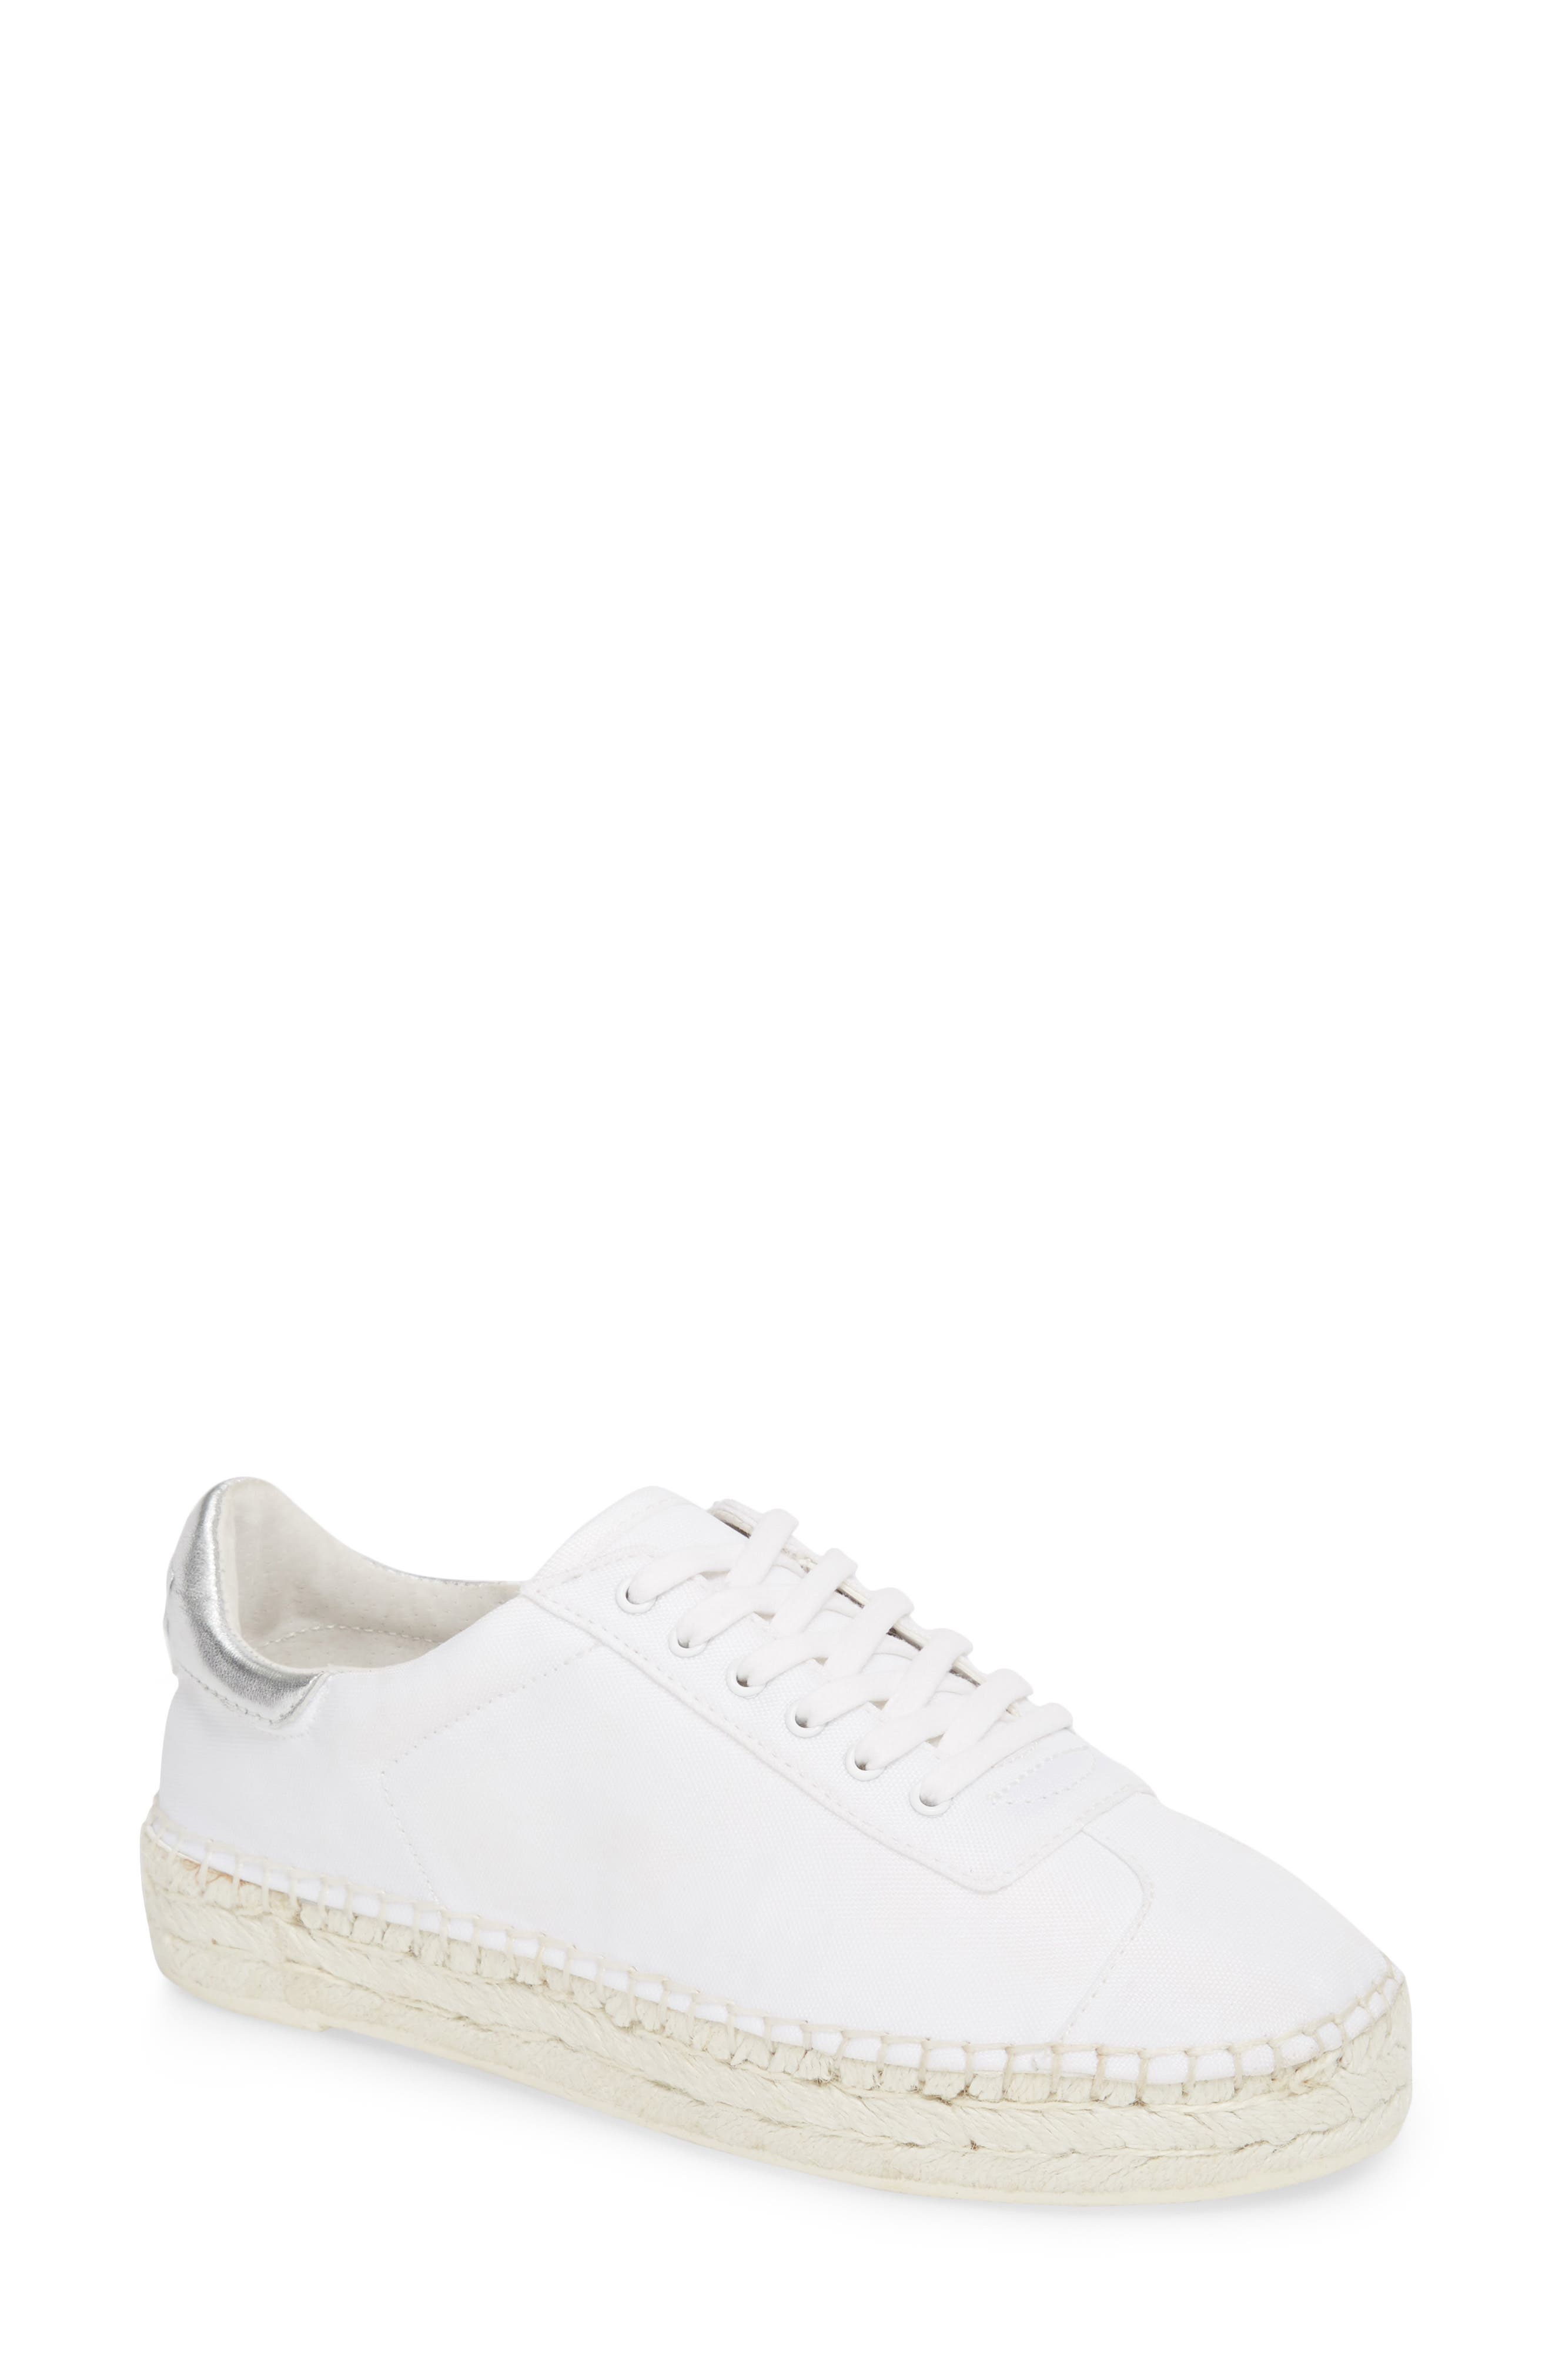 James Espadrille Sneaker,                             Main thumbnail 1, color,                             White/ Silver